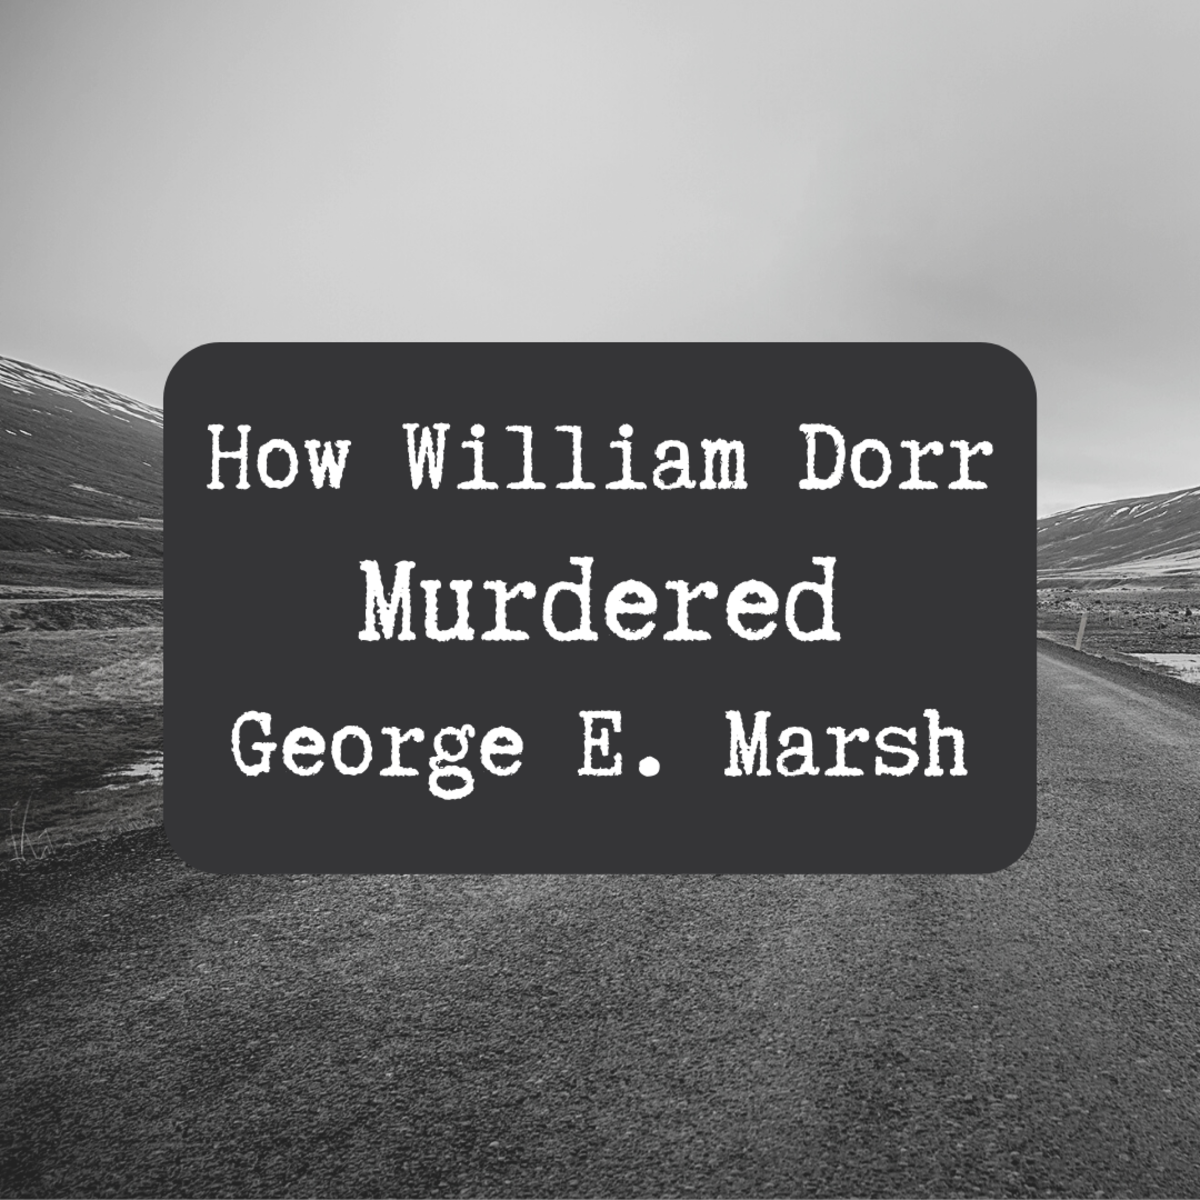 Explore the true-crime story of George E. Marsh's murder at the hands of William Dorr.